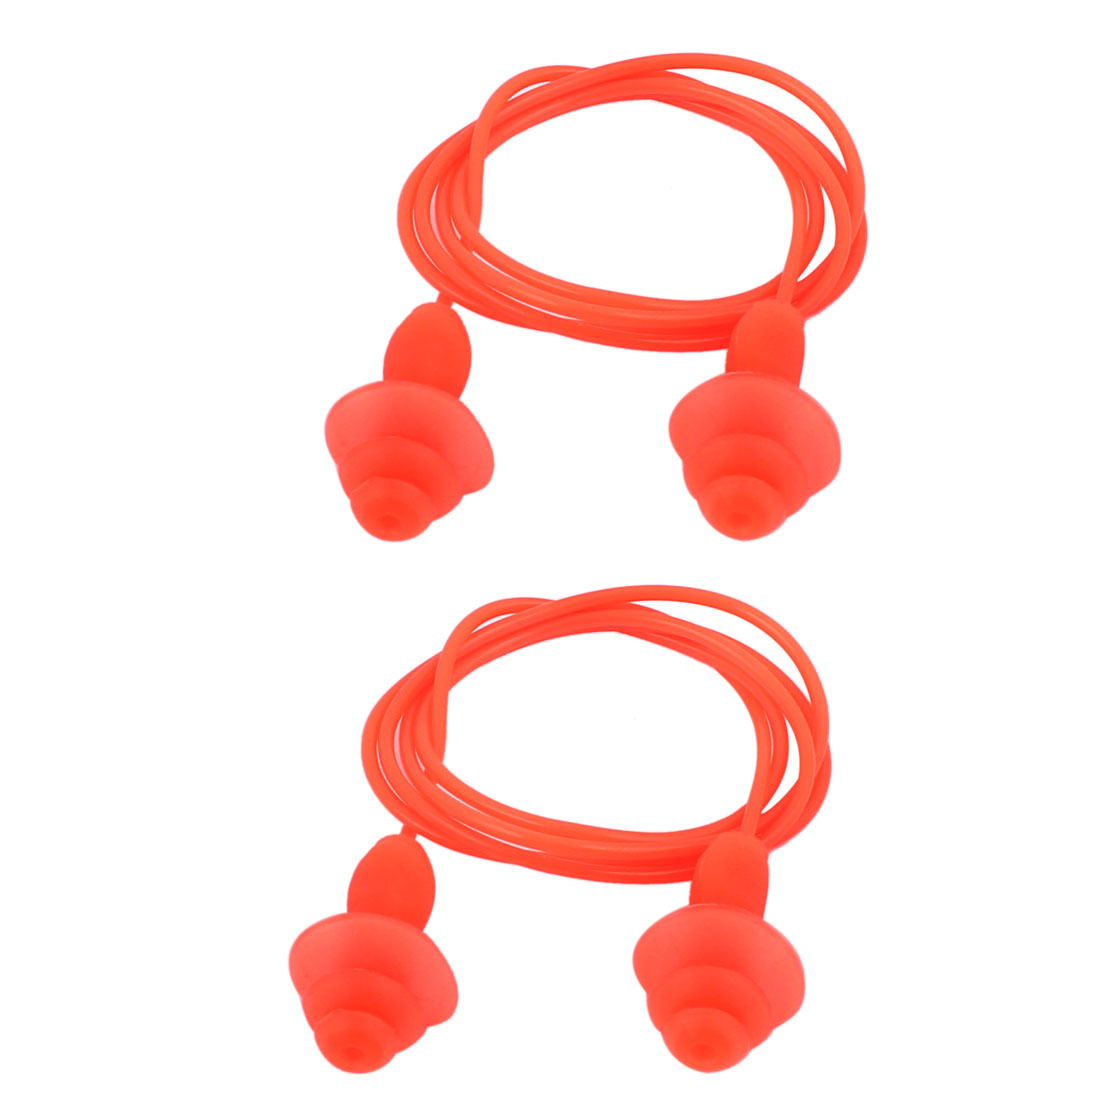 Soft Silicone Swimming String Earplug Ear Plugs Protector Orange 2pcs